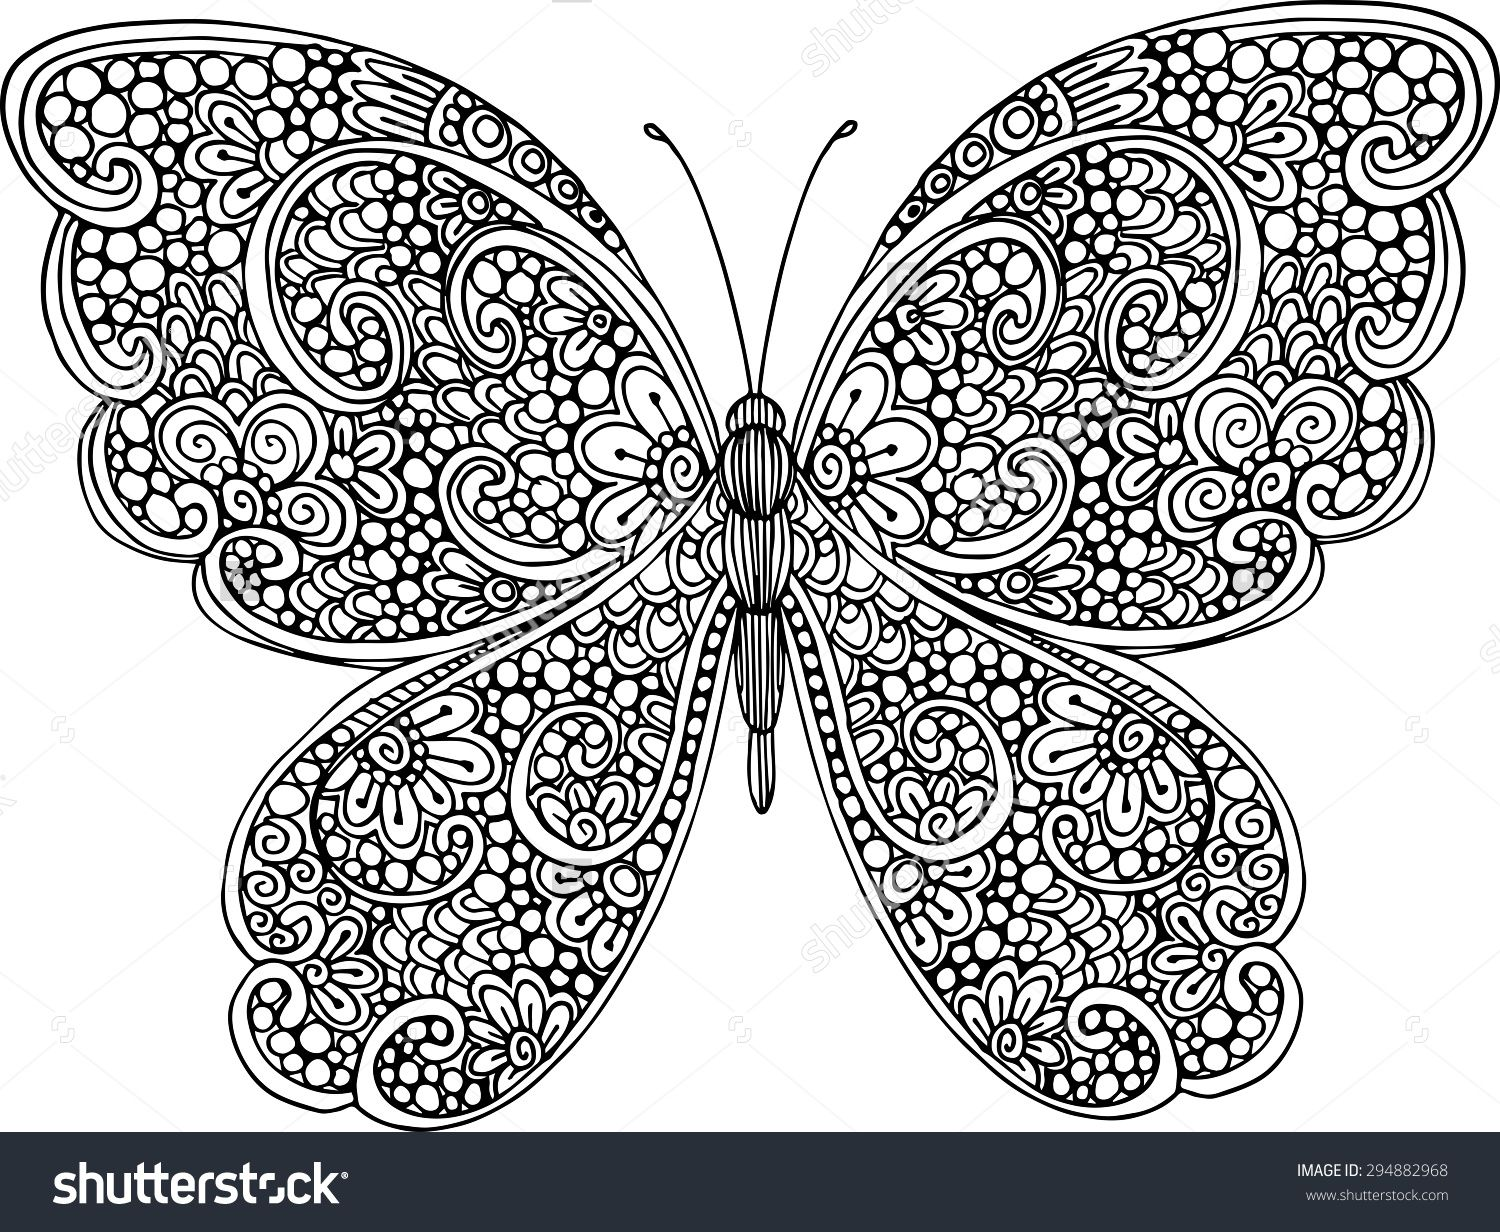 Hand Drawn Ornamental Butterfly Outline Illustration With